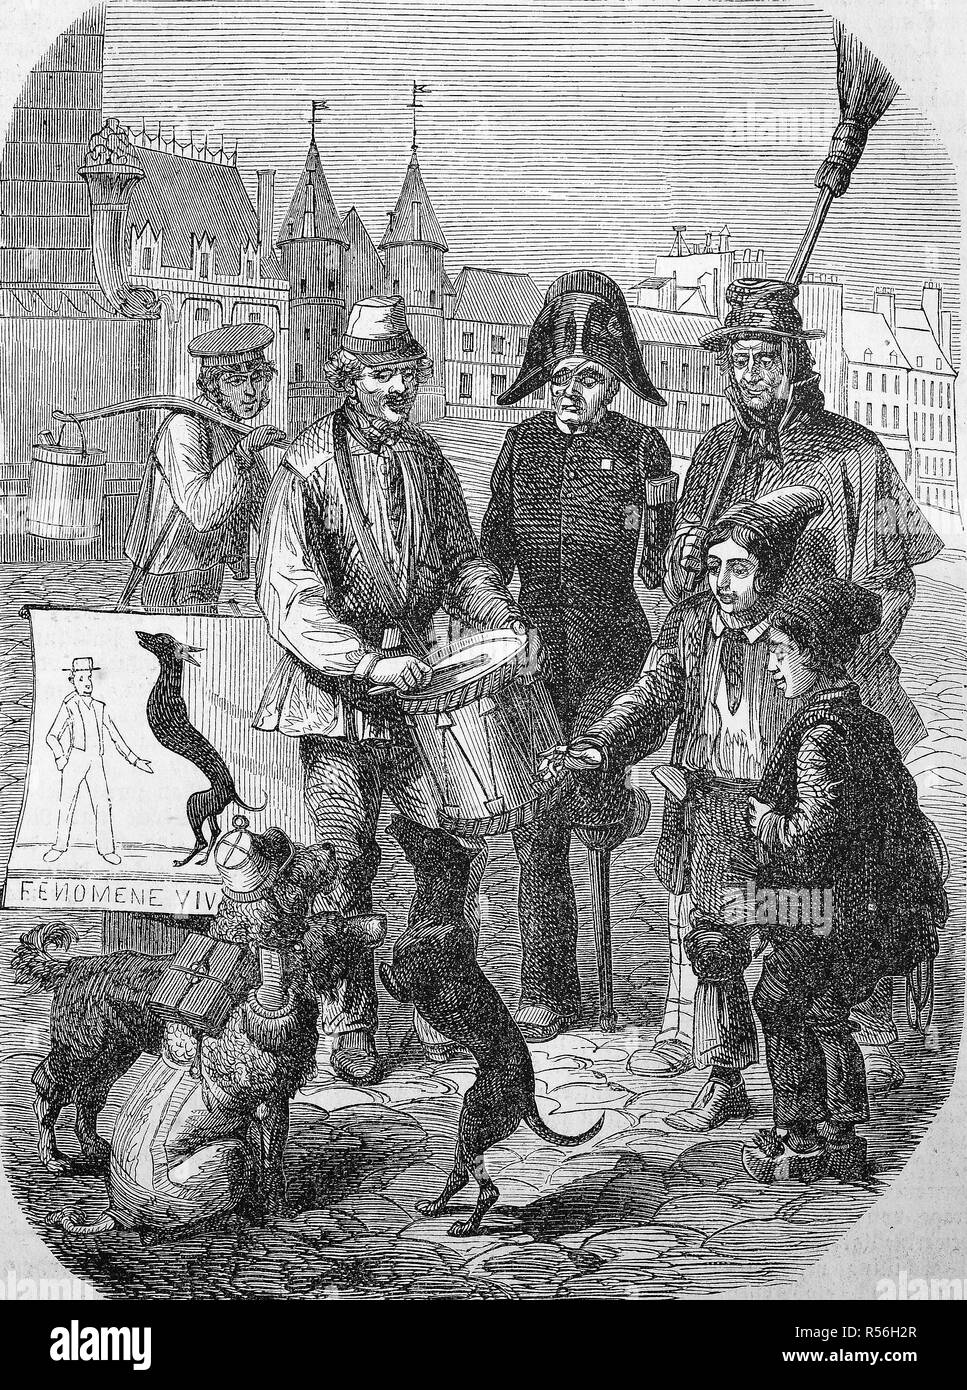 Street Circus, docile dog without paws makes tricks, 1870, woodcut, England - Stock Image